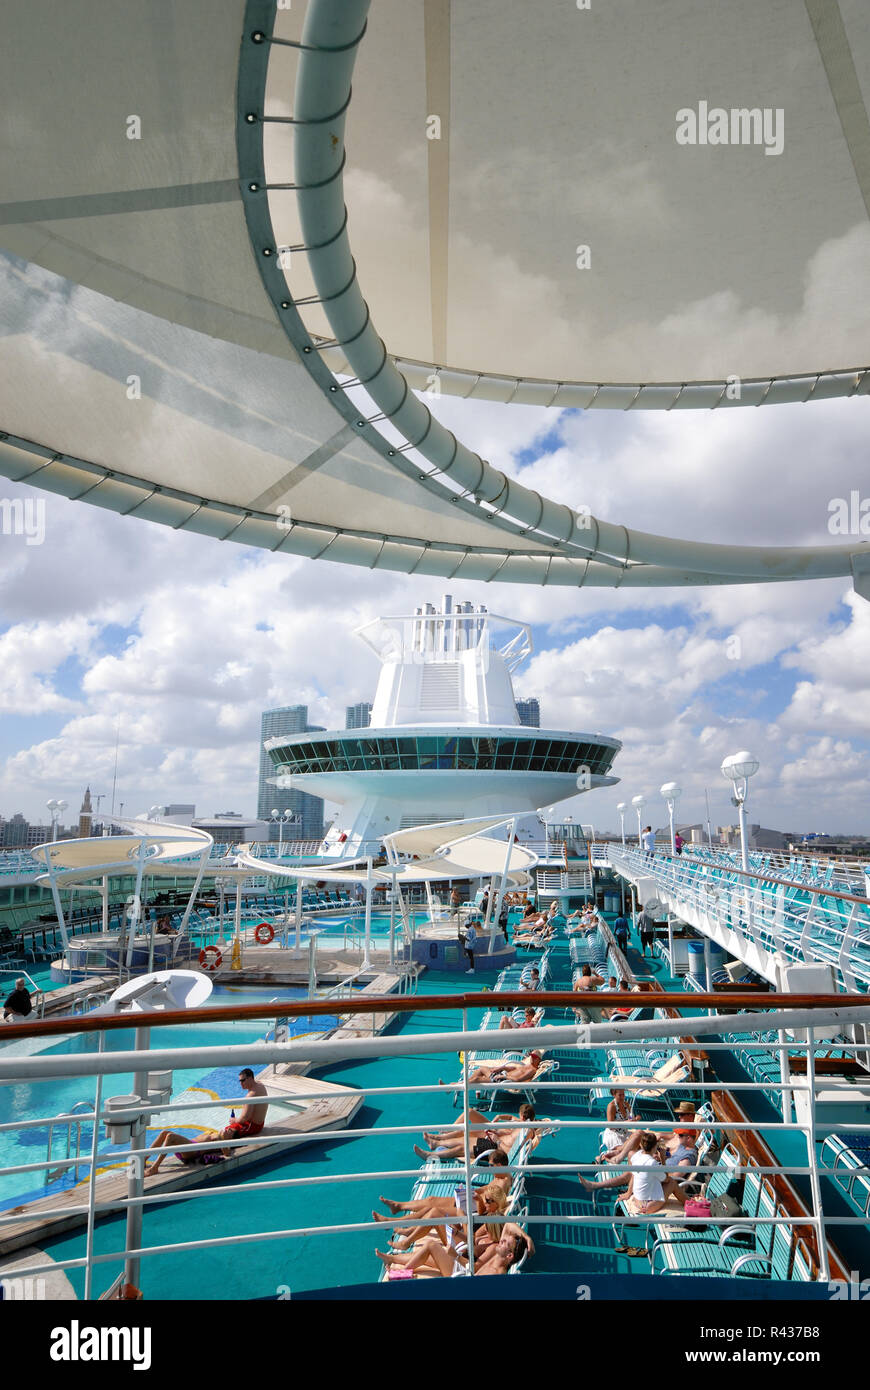 The pool deck on Royal Caribbean Interational's Majesty of the Seas cruise ship. - Stock Image